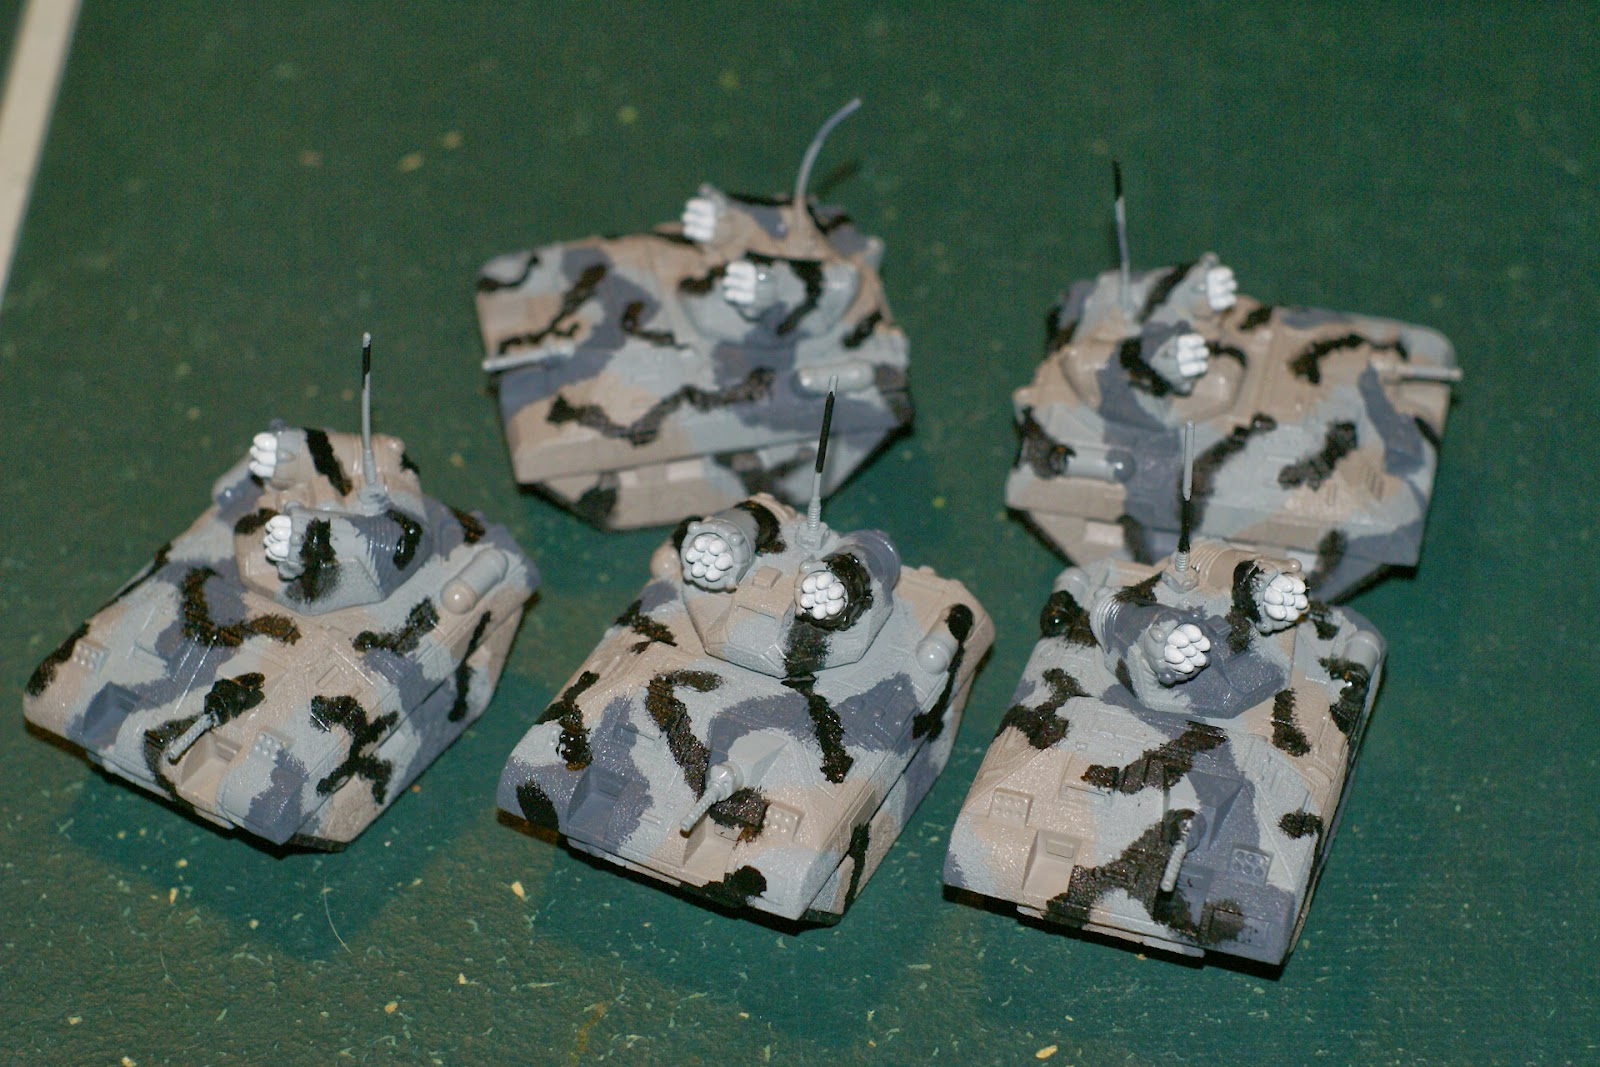 The Backyard Ogre Catapult Part - 15: Five Missile Tanks, All 100% Kryomek. You Can Buy These Things From Noble  Knight For About $15.00, Or Kryomek USA For $25.00. You Can Also Buy Bags  Of Guns, ...